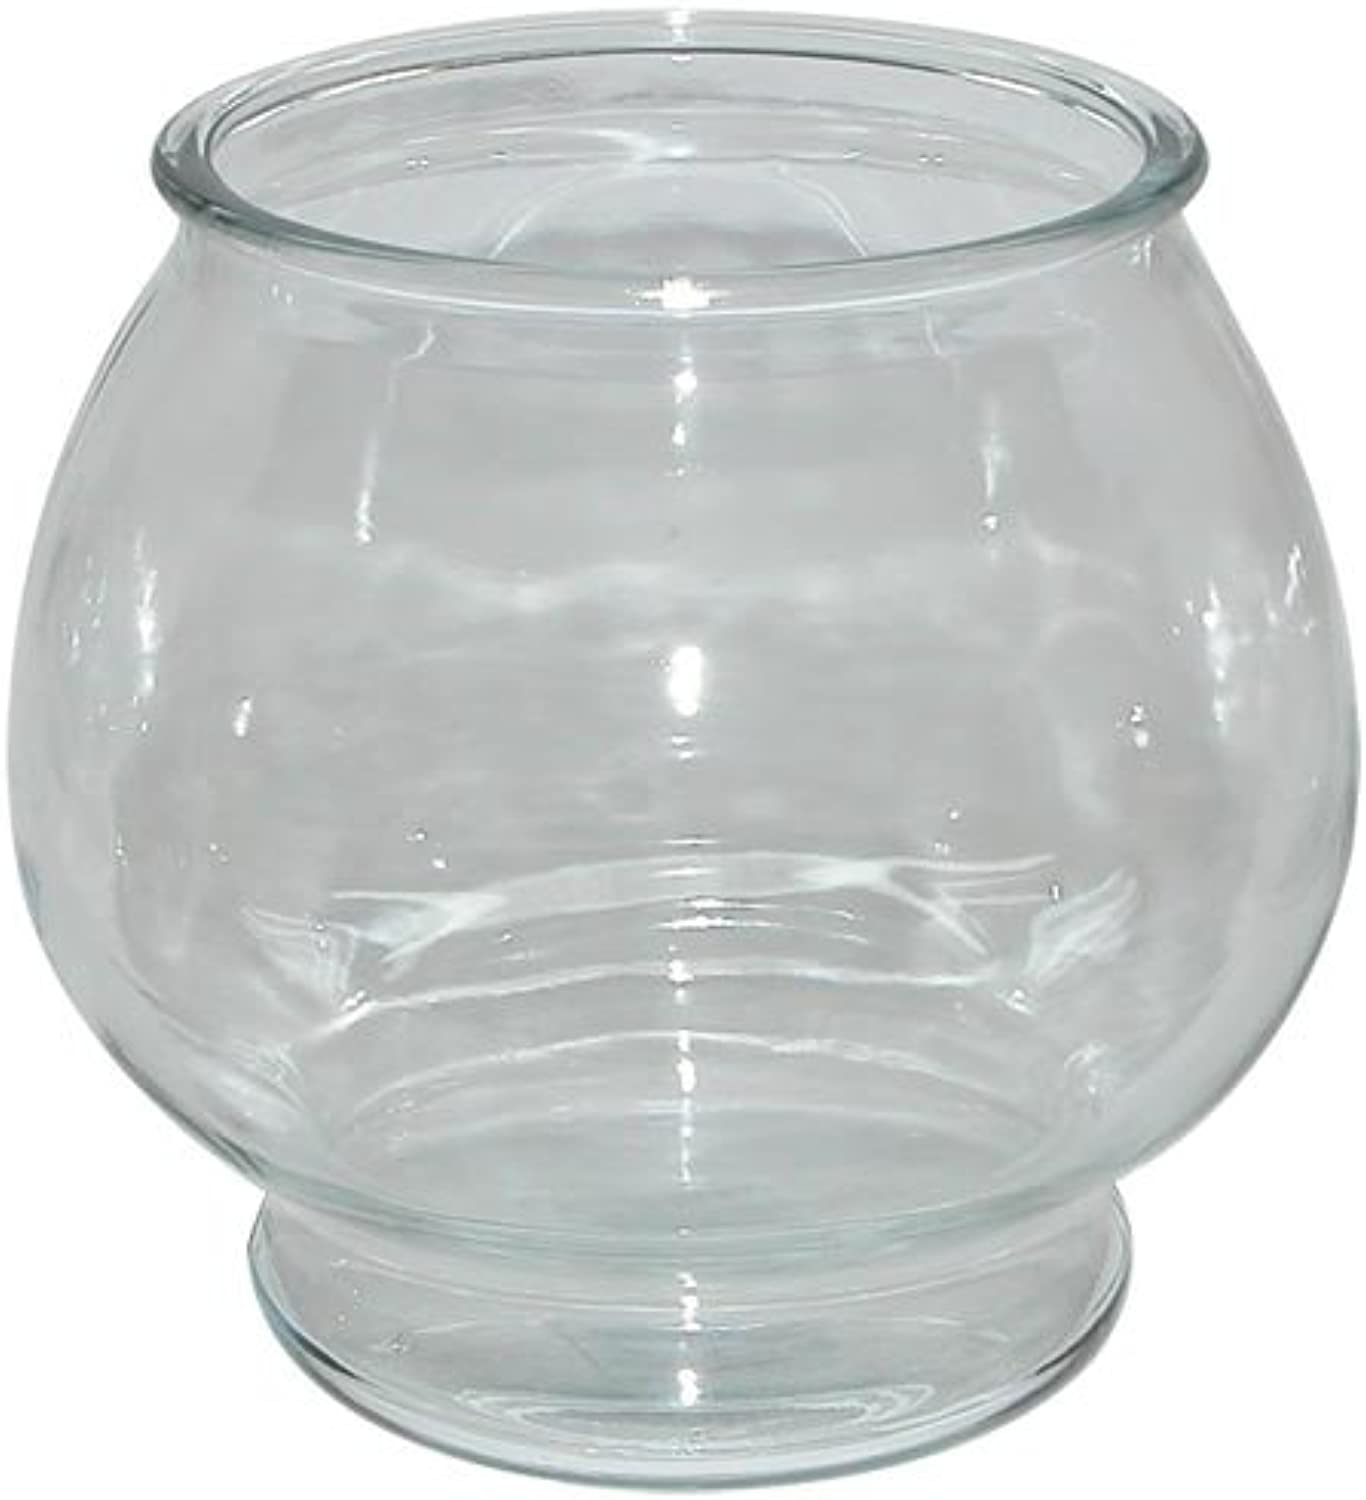 Anchor Hocking Footed Glass Round Fish Bowl Heavy Duty Crystal Clear 1Gallon